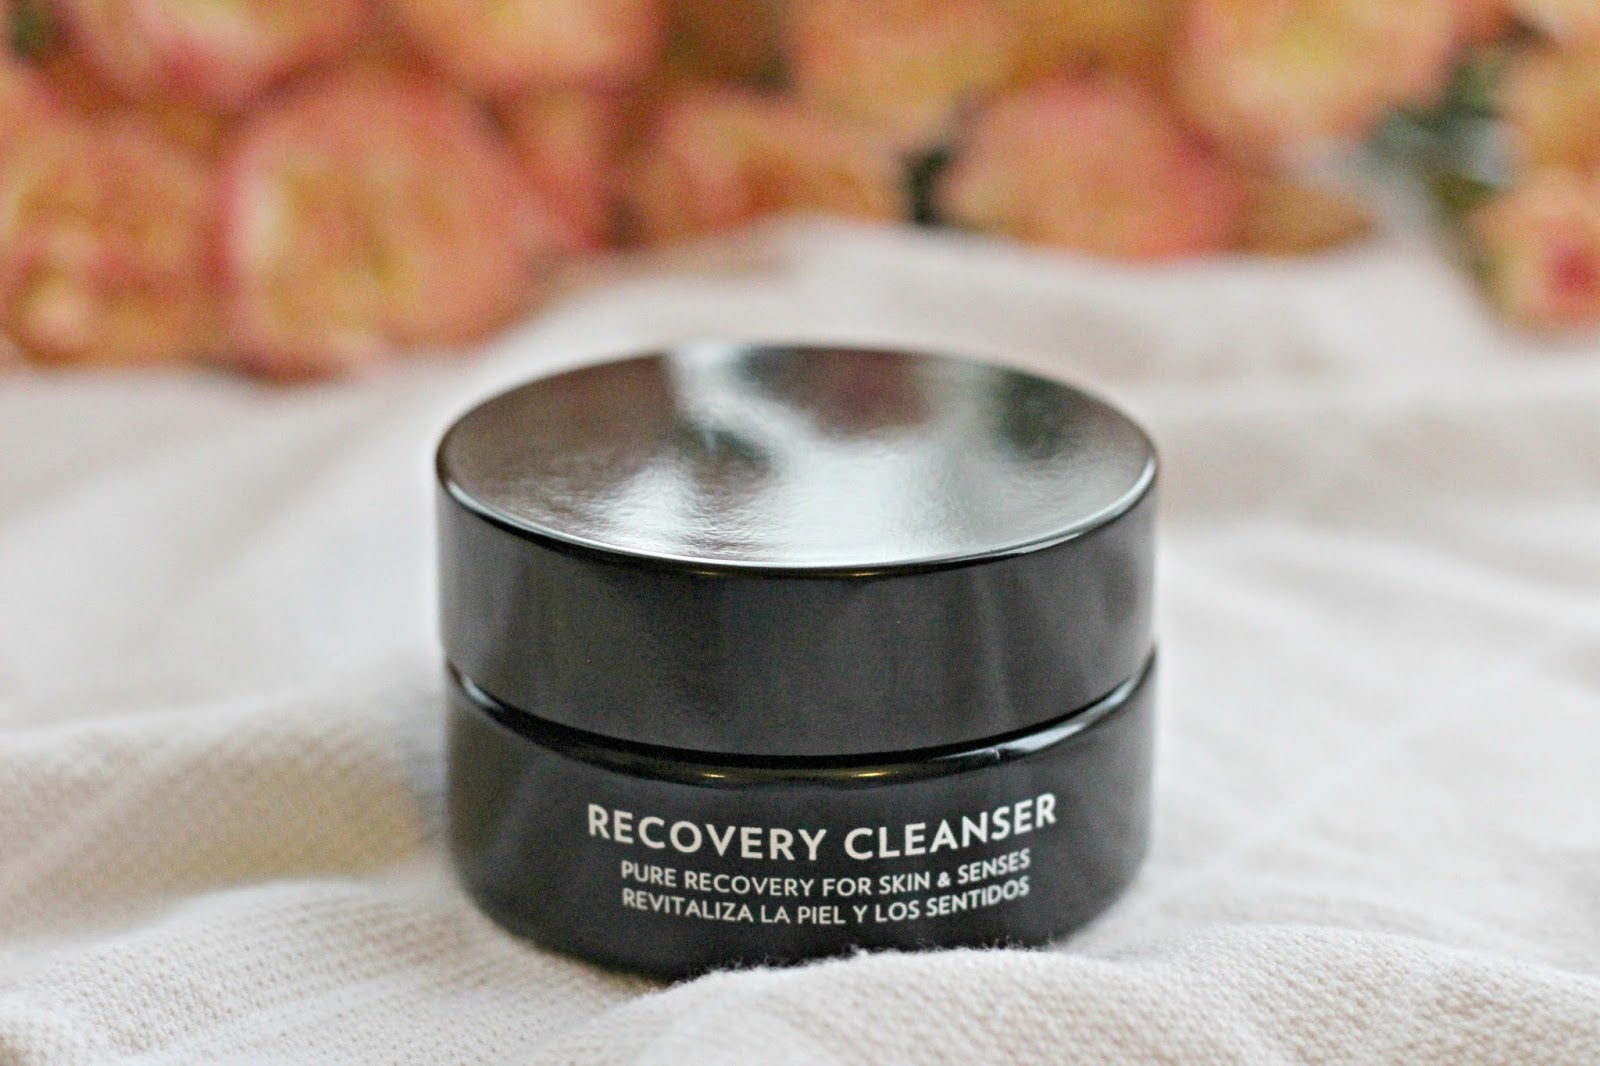 Friday night pamper: Dafna's Recovery cleanser review